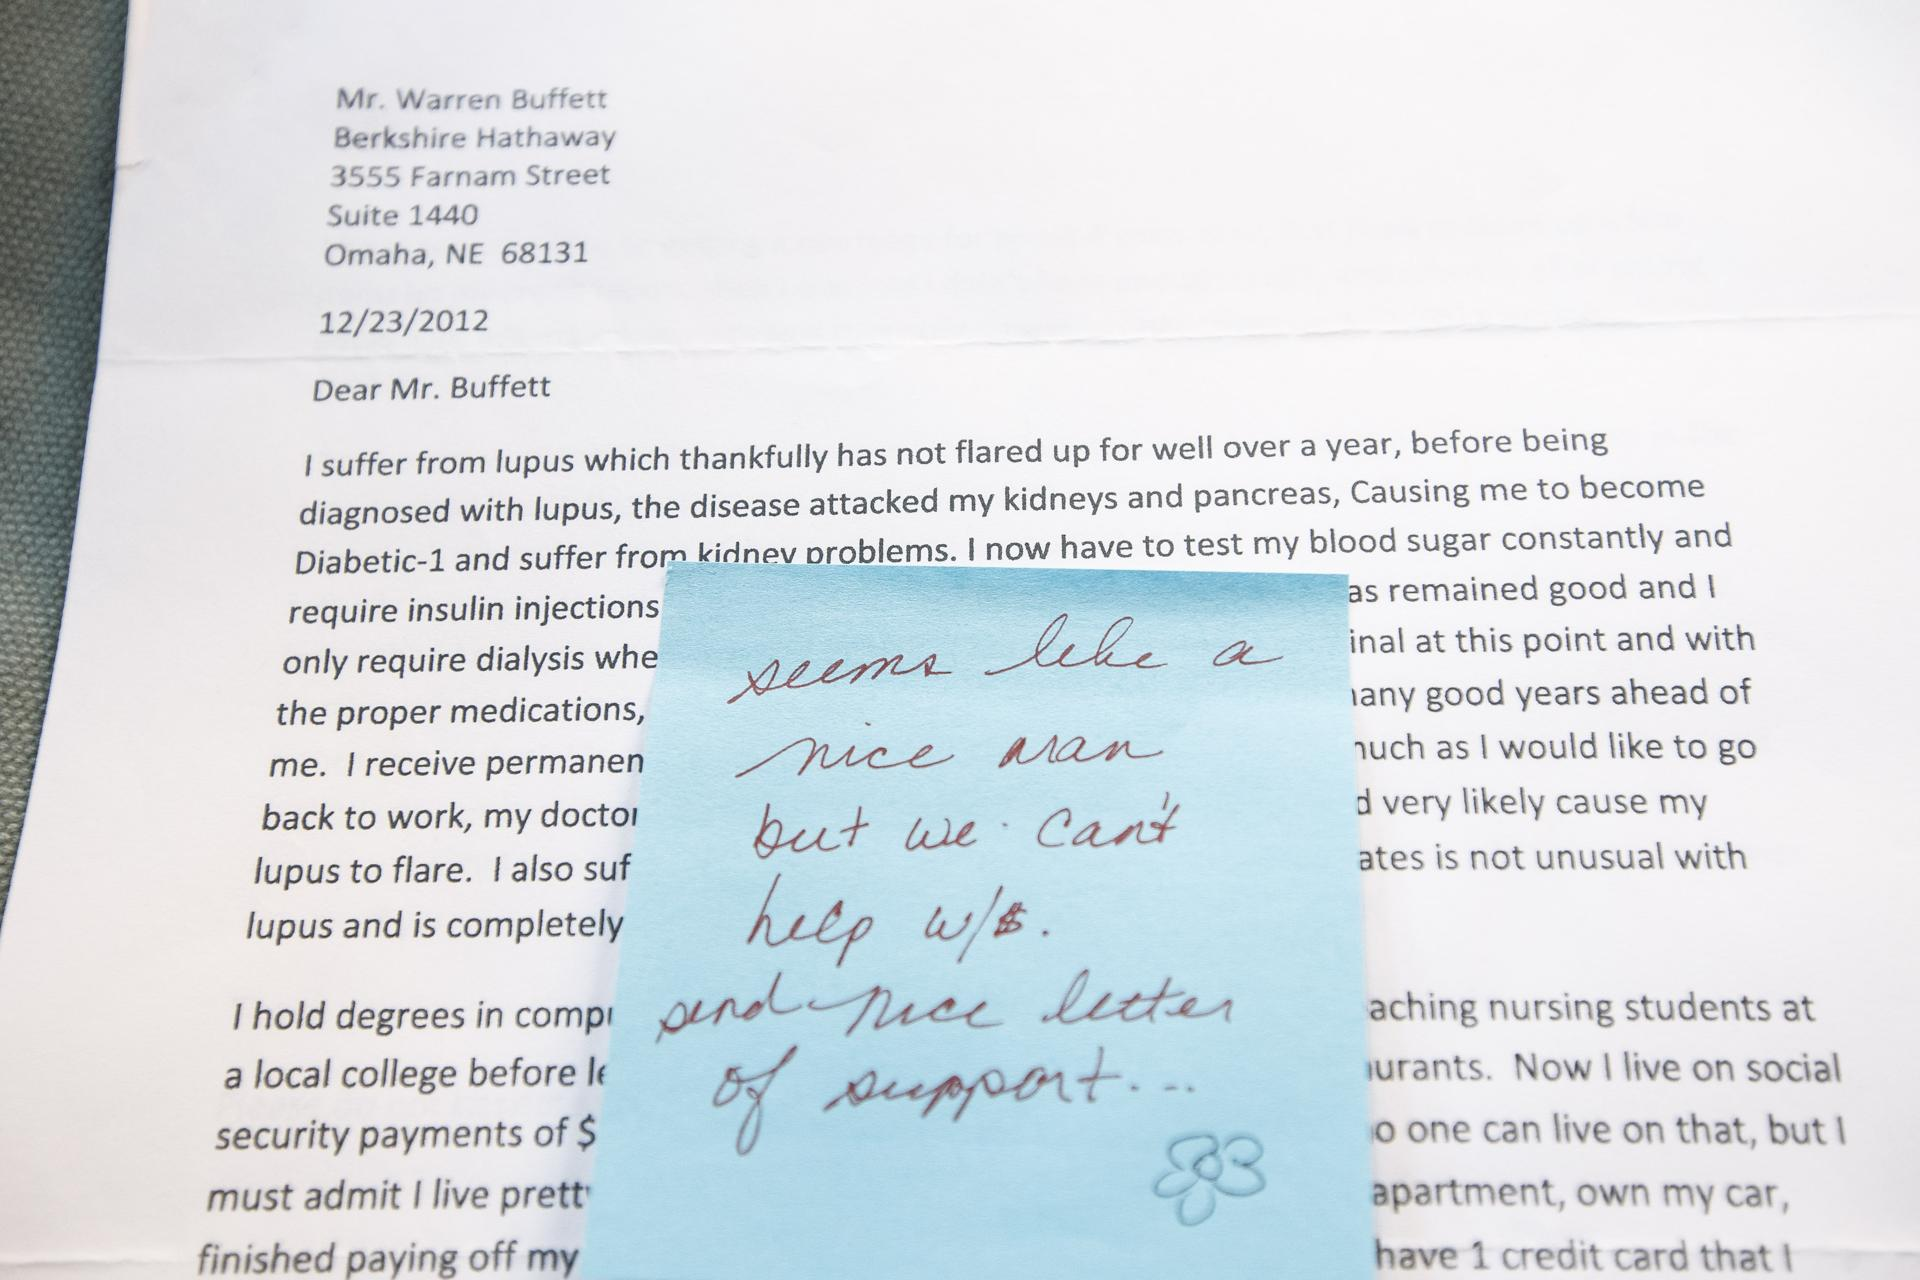 warren buffet letter howard buffett warren buffett letter handing out warren buffett s fortune his sister doris buffett